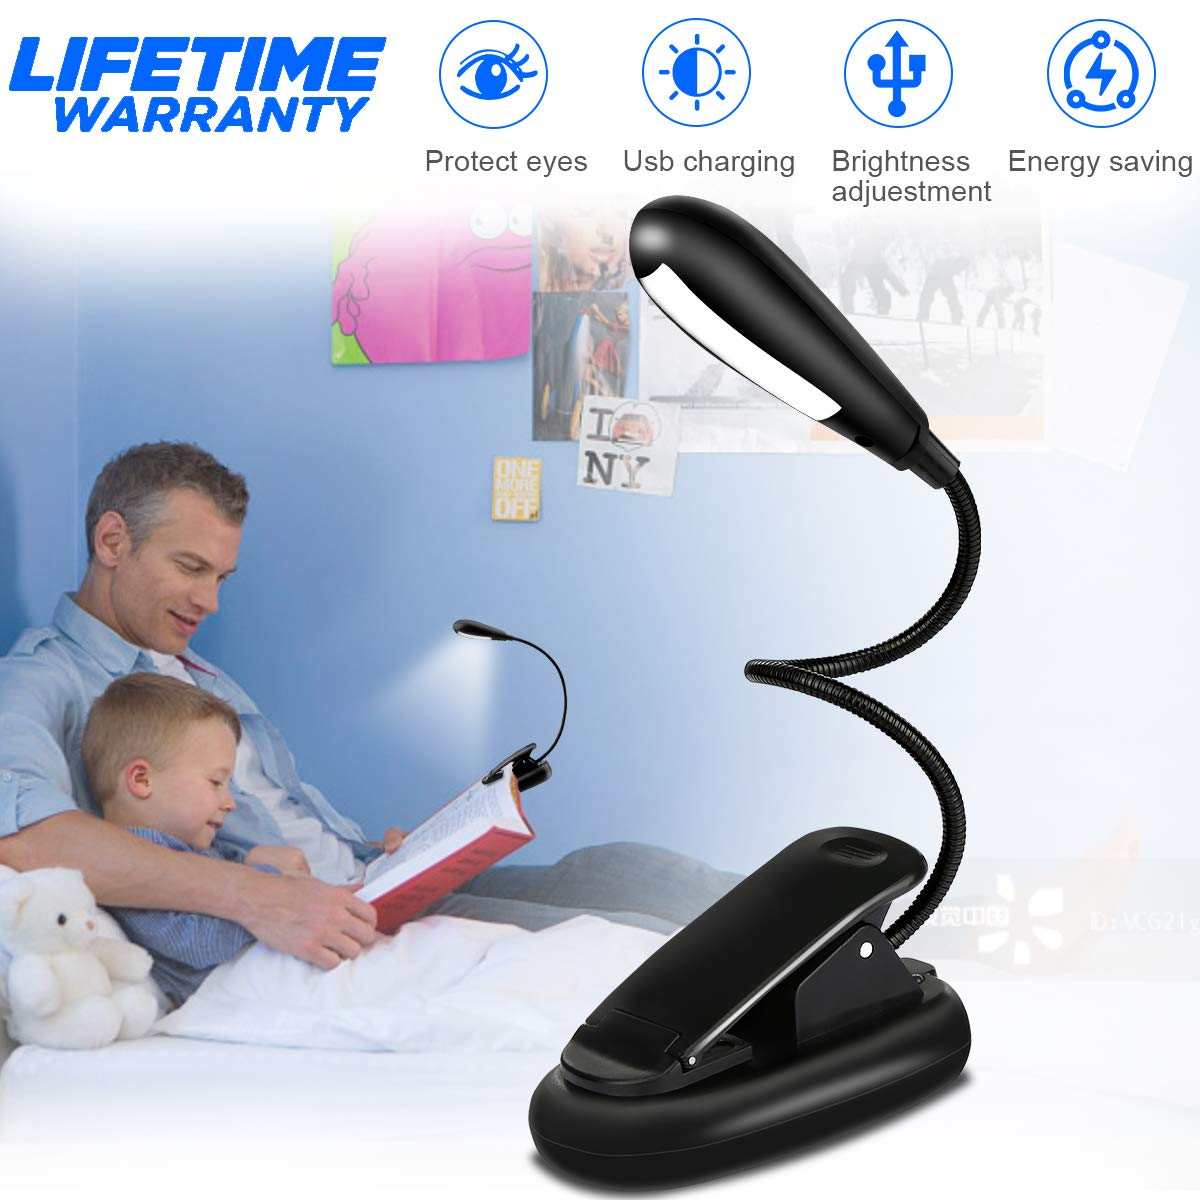 Rechargeable LED Book Light, Eye-Care Reading Light 7 LED Night Light 3 Level Brightness Reading Lamp Cool and Warm for Night Reading, Camping, Fishing, Kids Reading, Bedroom